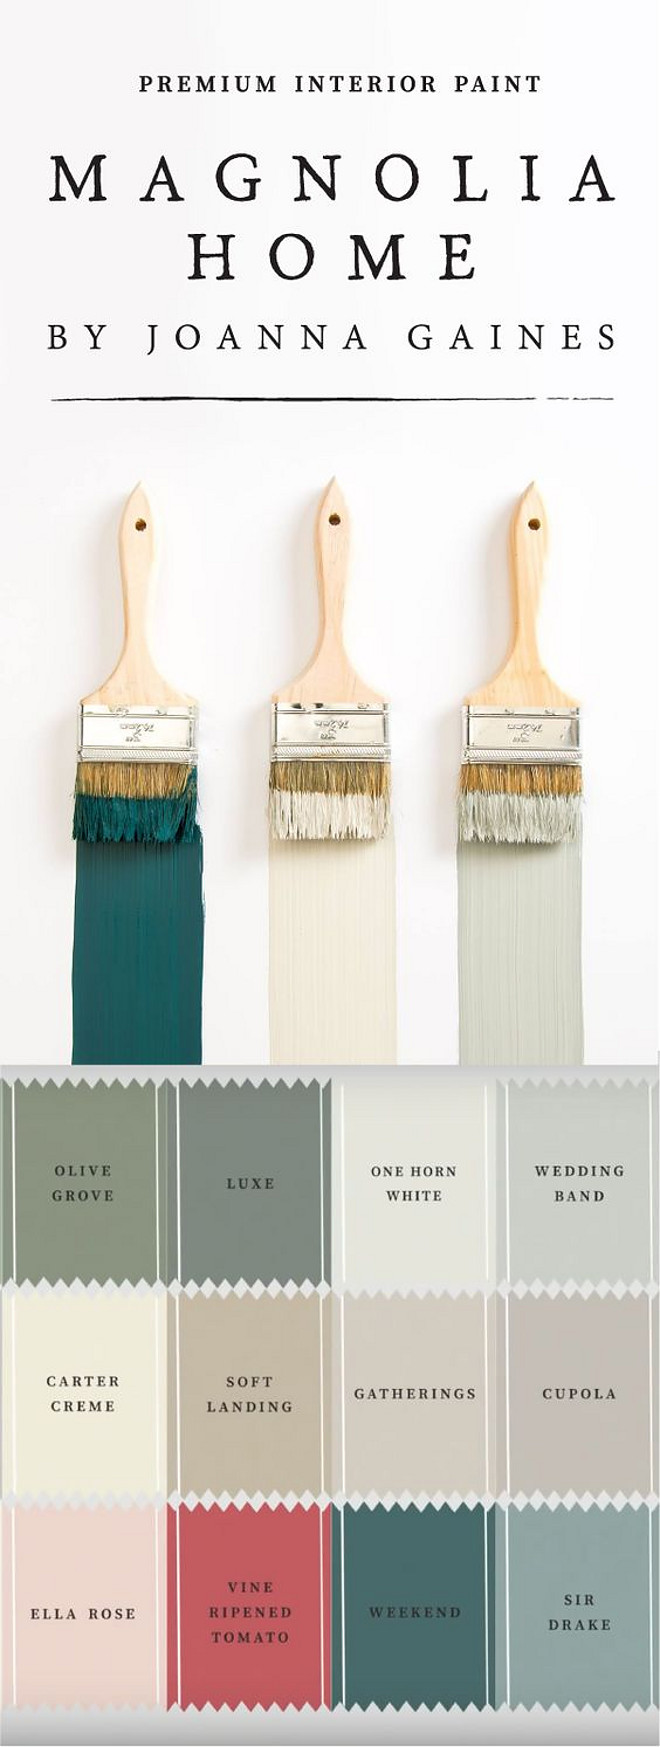 Joanna Gaines Magnolia Home Paint collection. Fixer Upper Joanna Gaines Magnolia Home Paint collection. Joanna Gaines Magnolia Home Paint collection. Fixer Upper Joanna Gaines Magnolia Home Paint collection #JoannaGaines #MagnoliaHome #Paintcollection #FixerUpper #JoannaGainesPaint #MagnoliaHomePaint